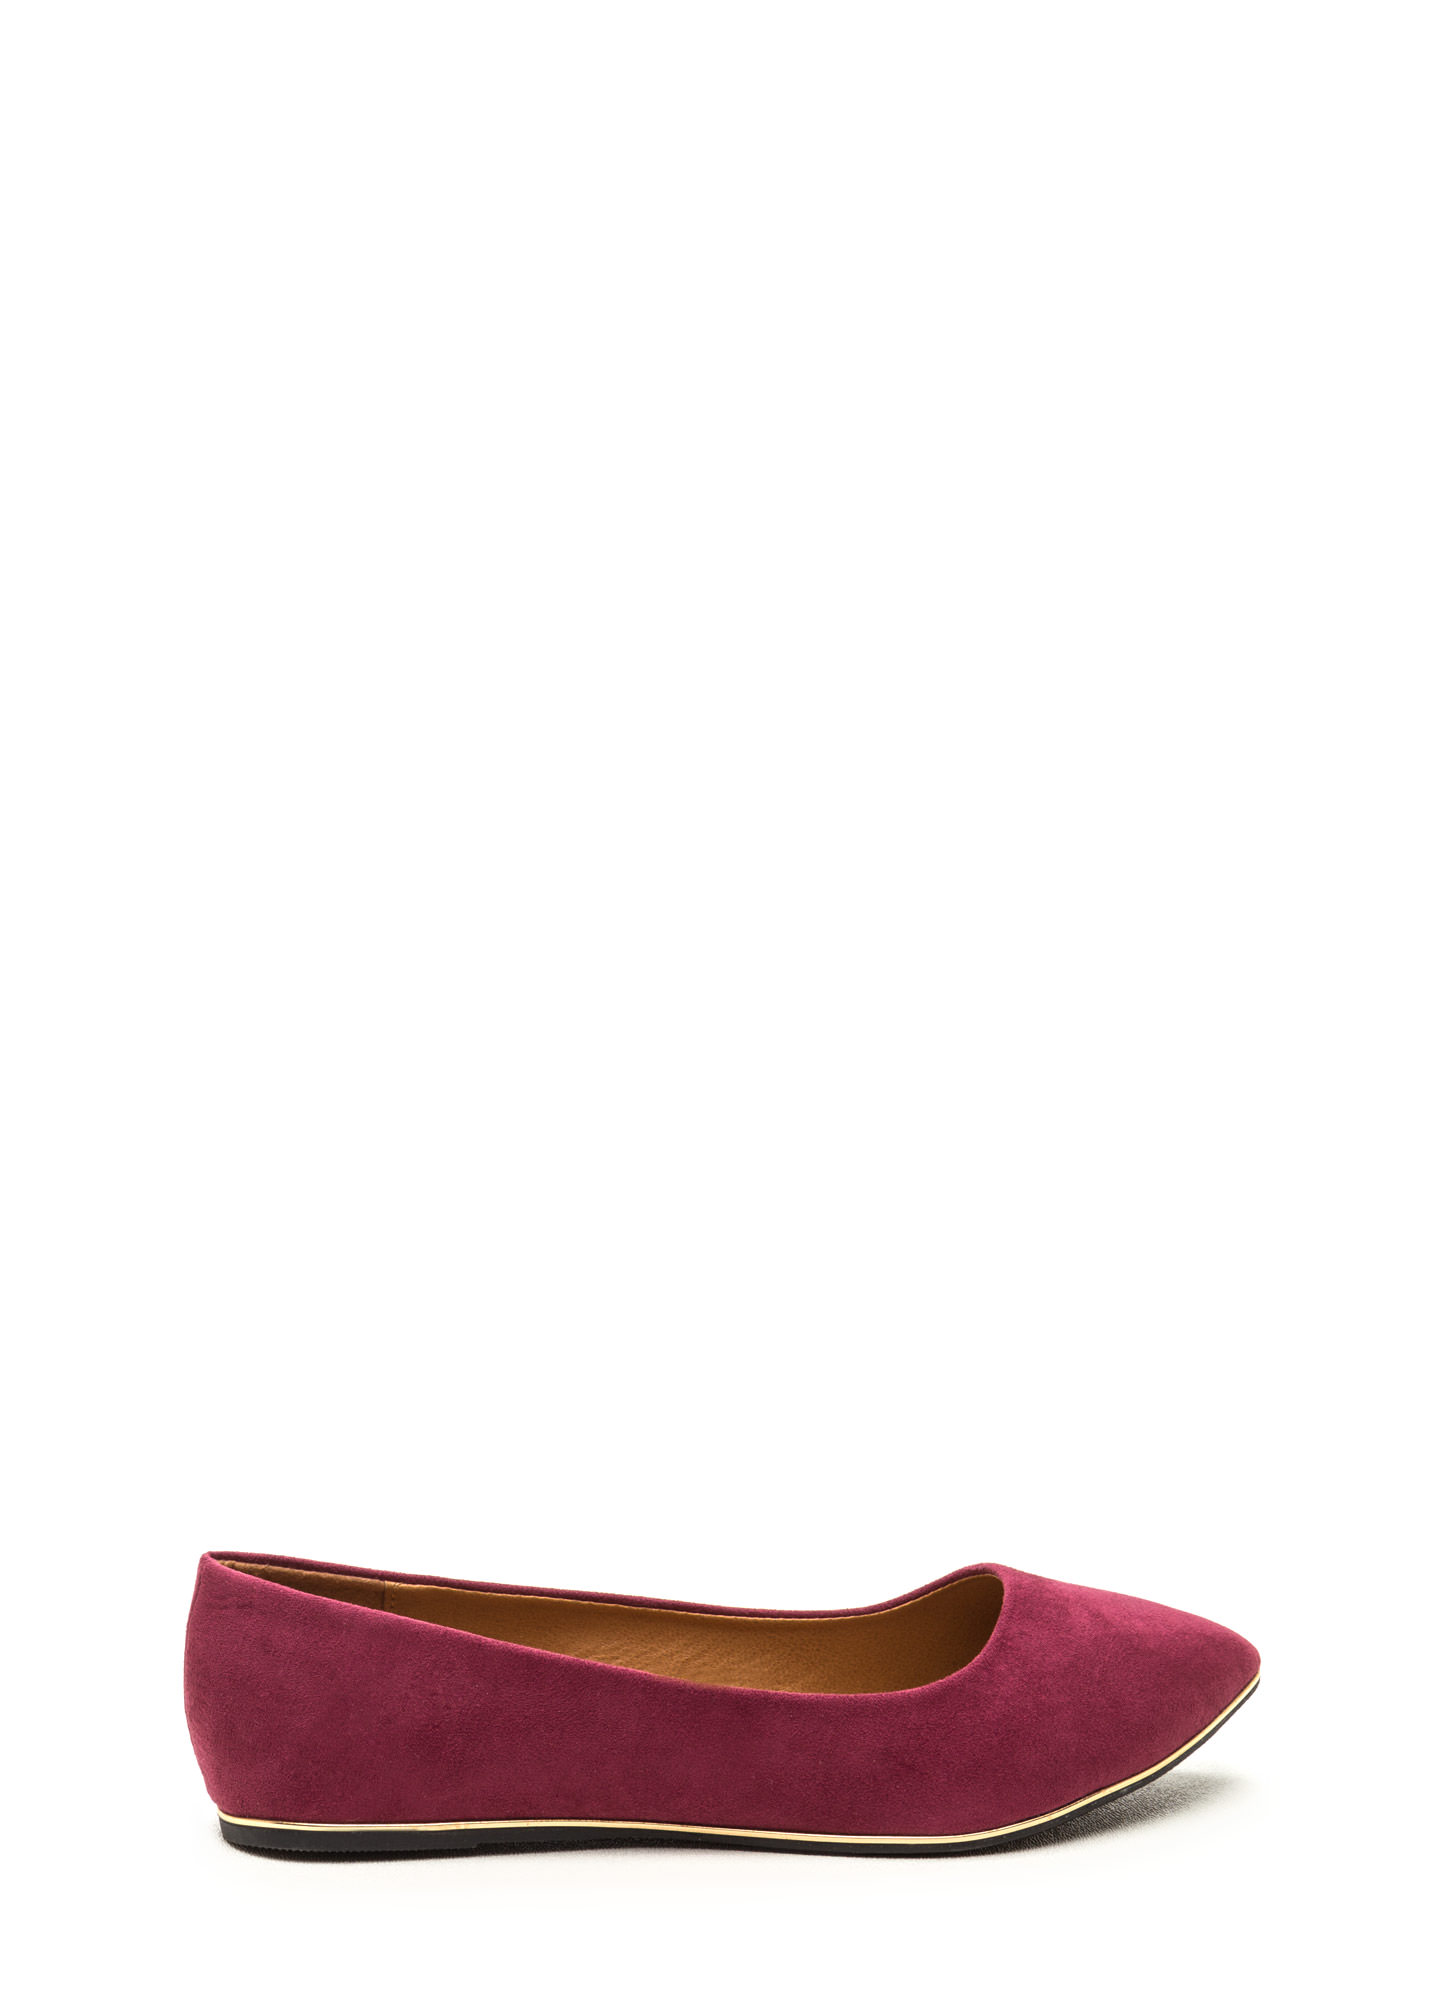 Full Gleam Ahead Pointy Faux Suede Flats WINE